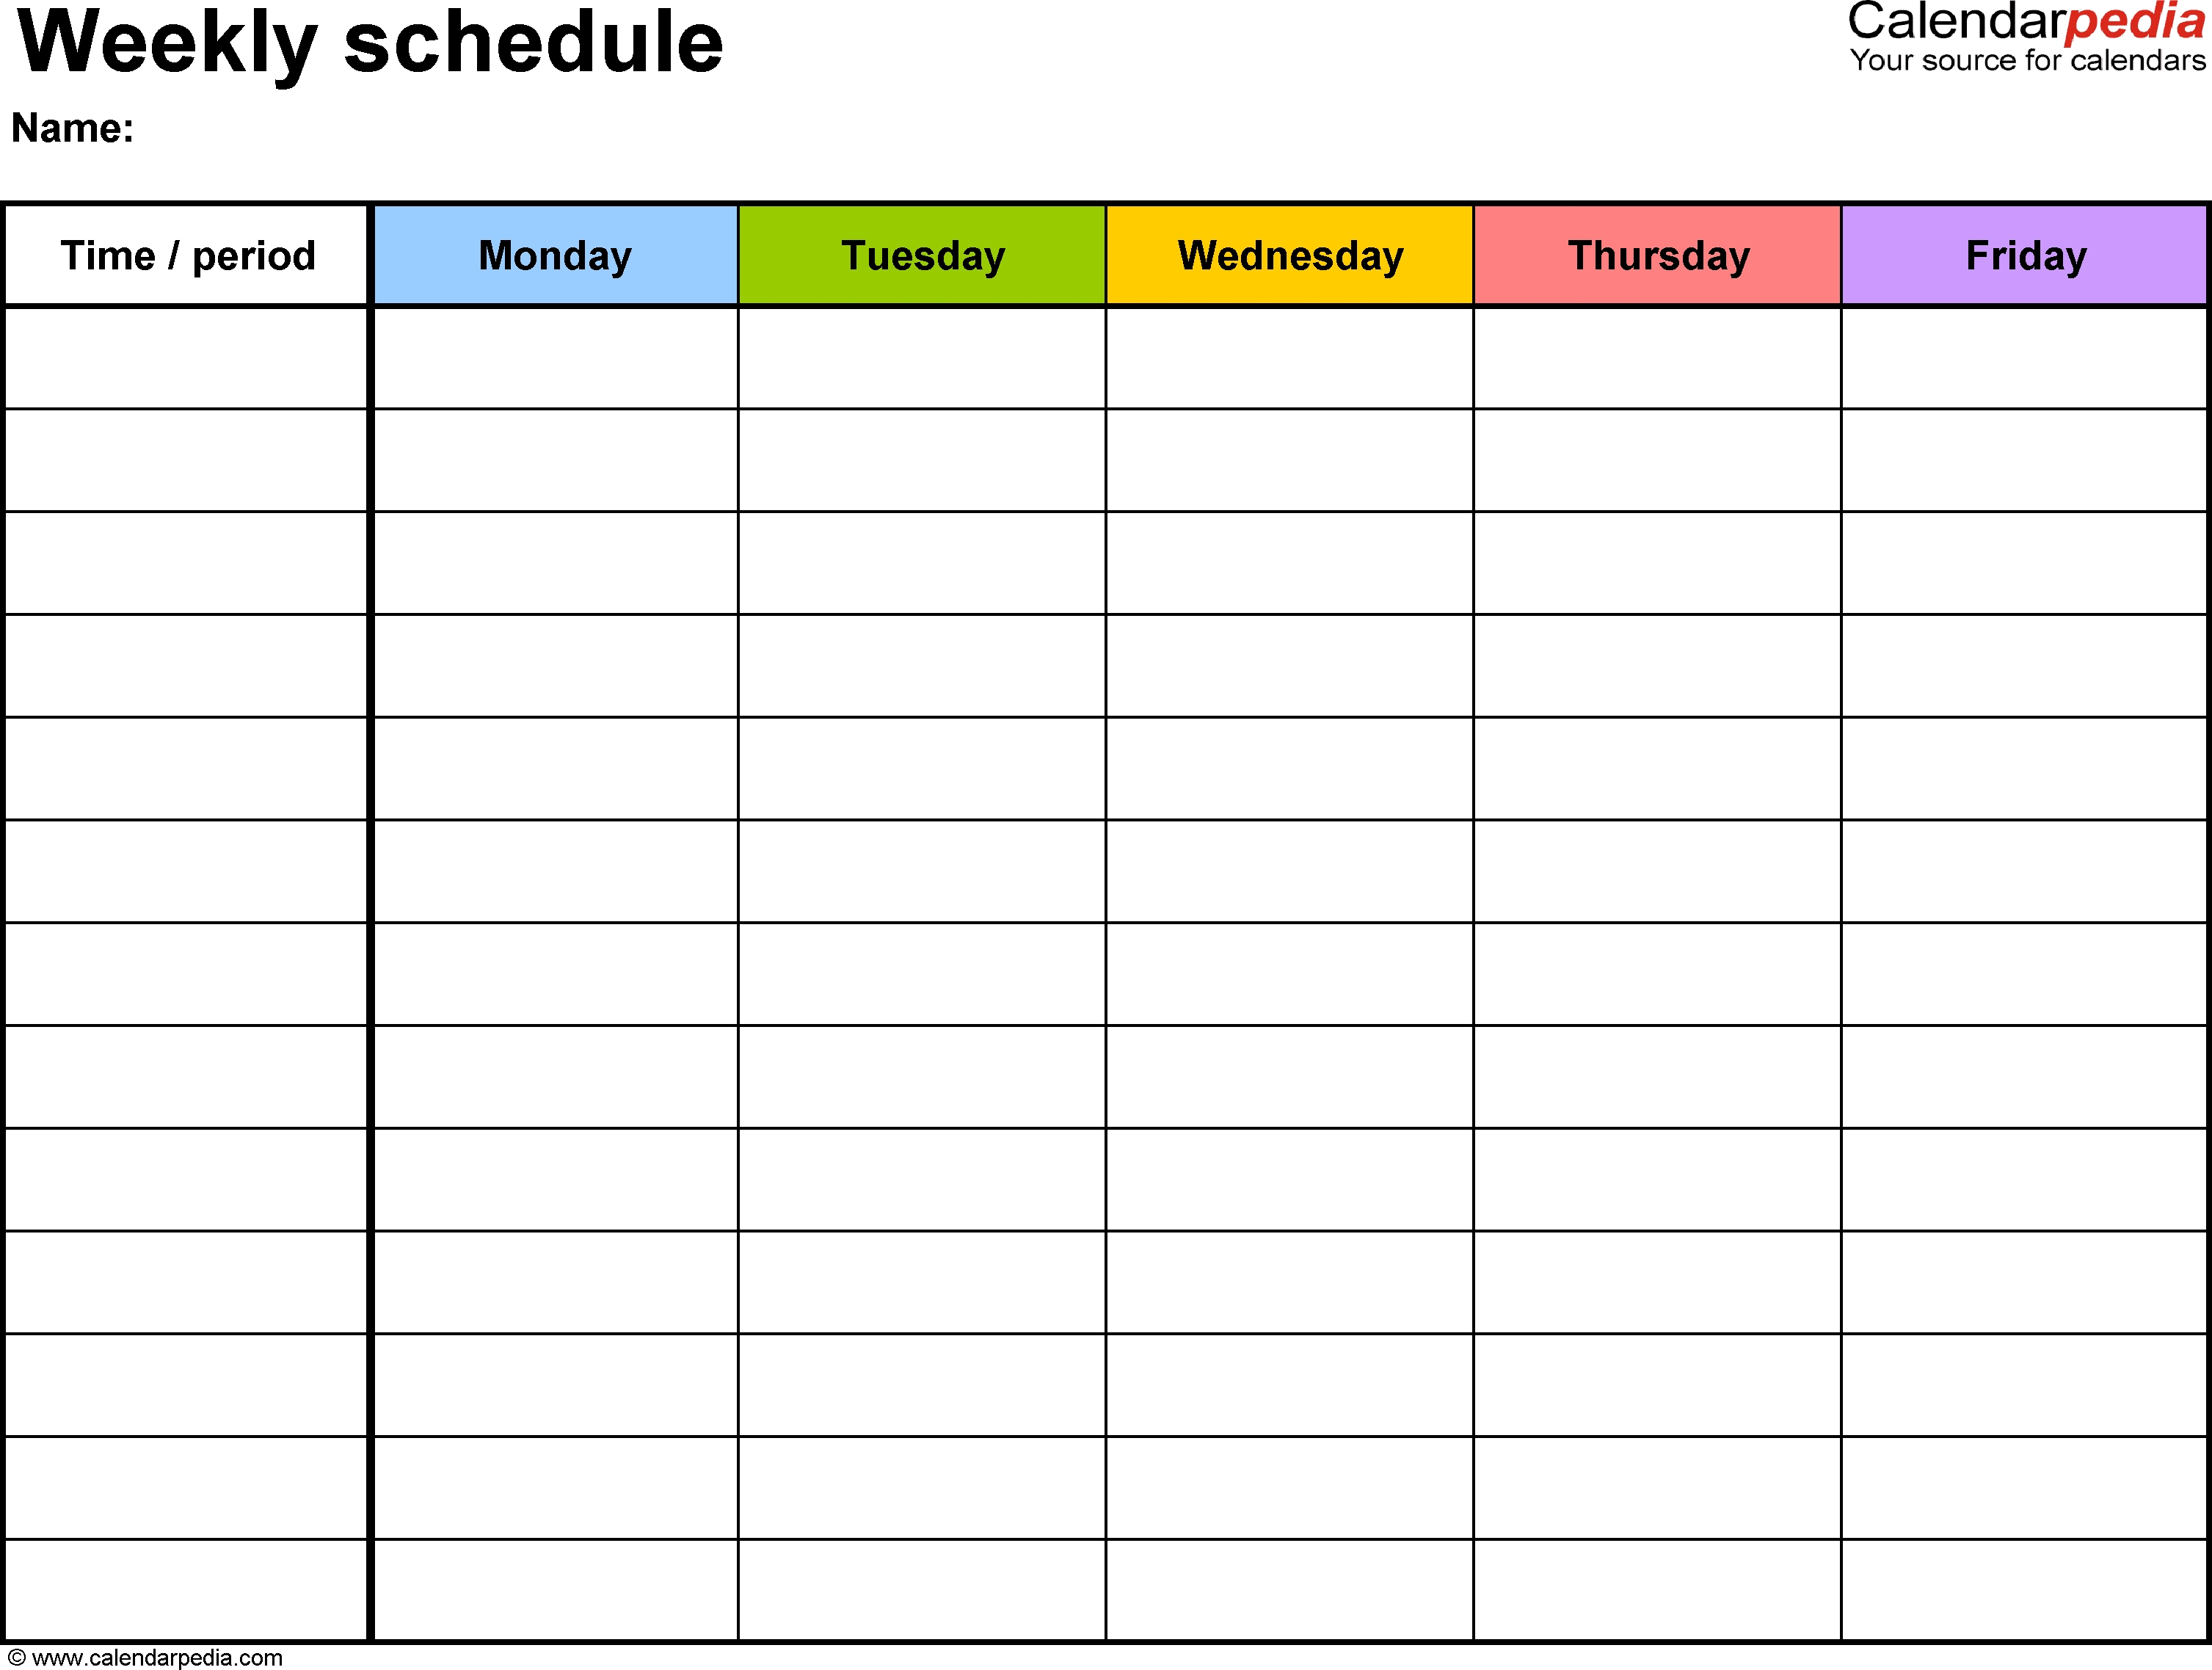 Free Weekly Schedule Templates For Word - 18 Templates in Free Printable Weekly Blank Calendar